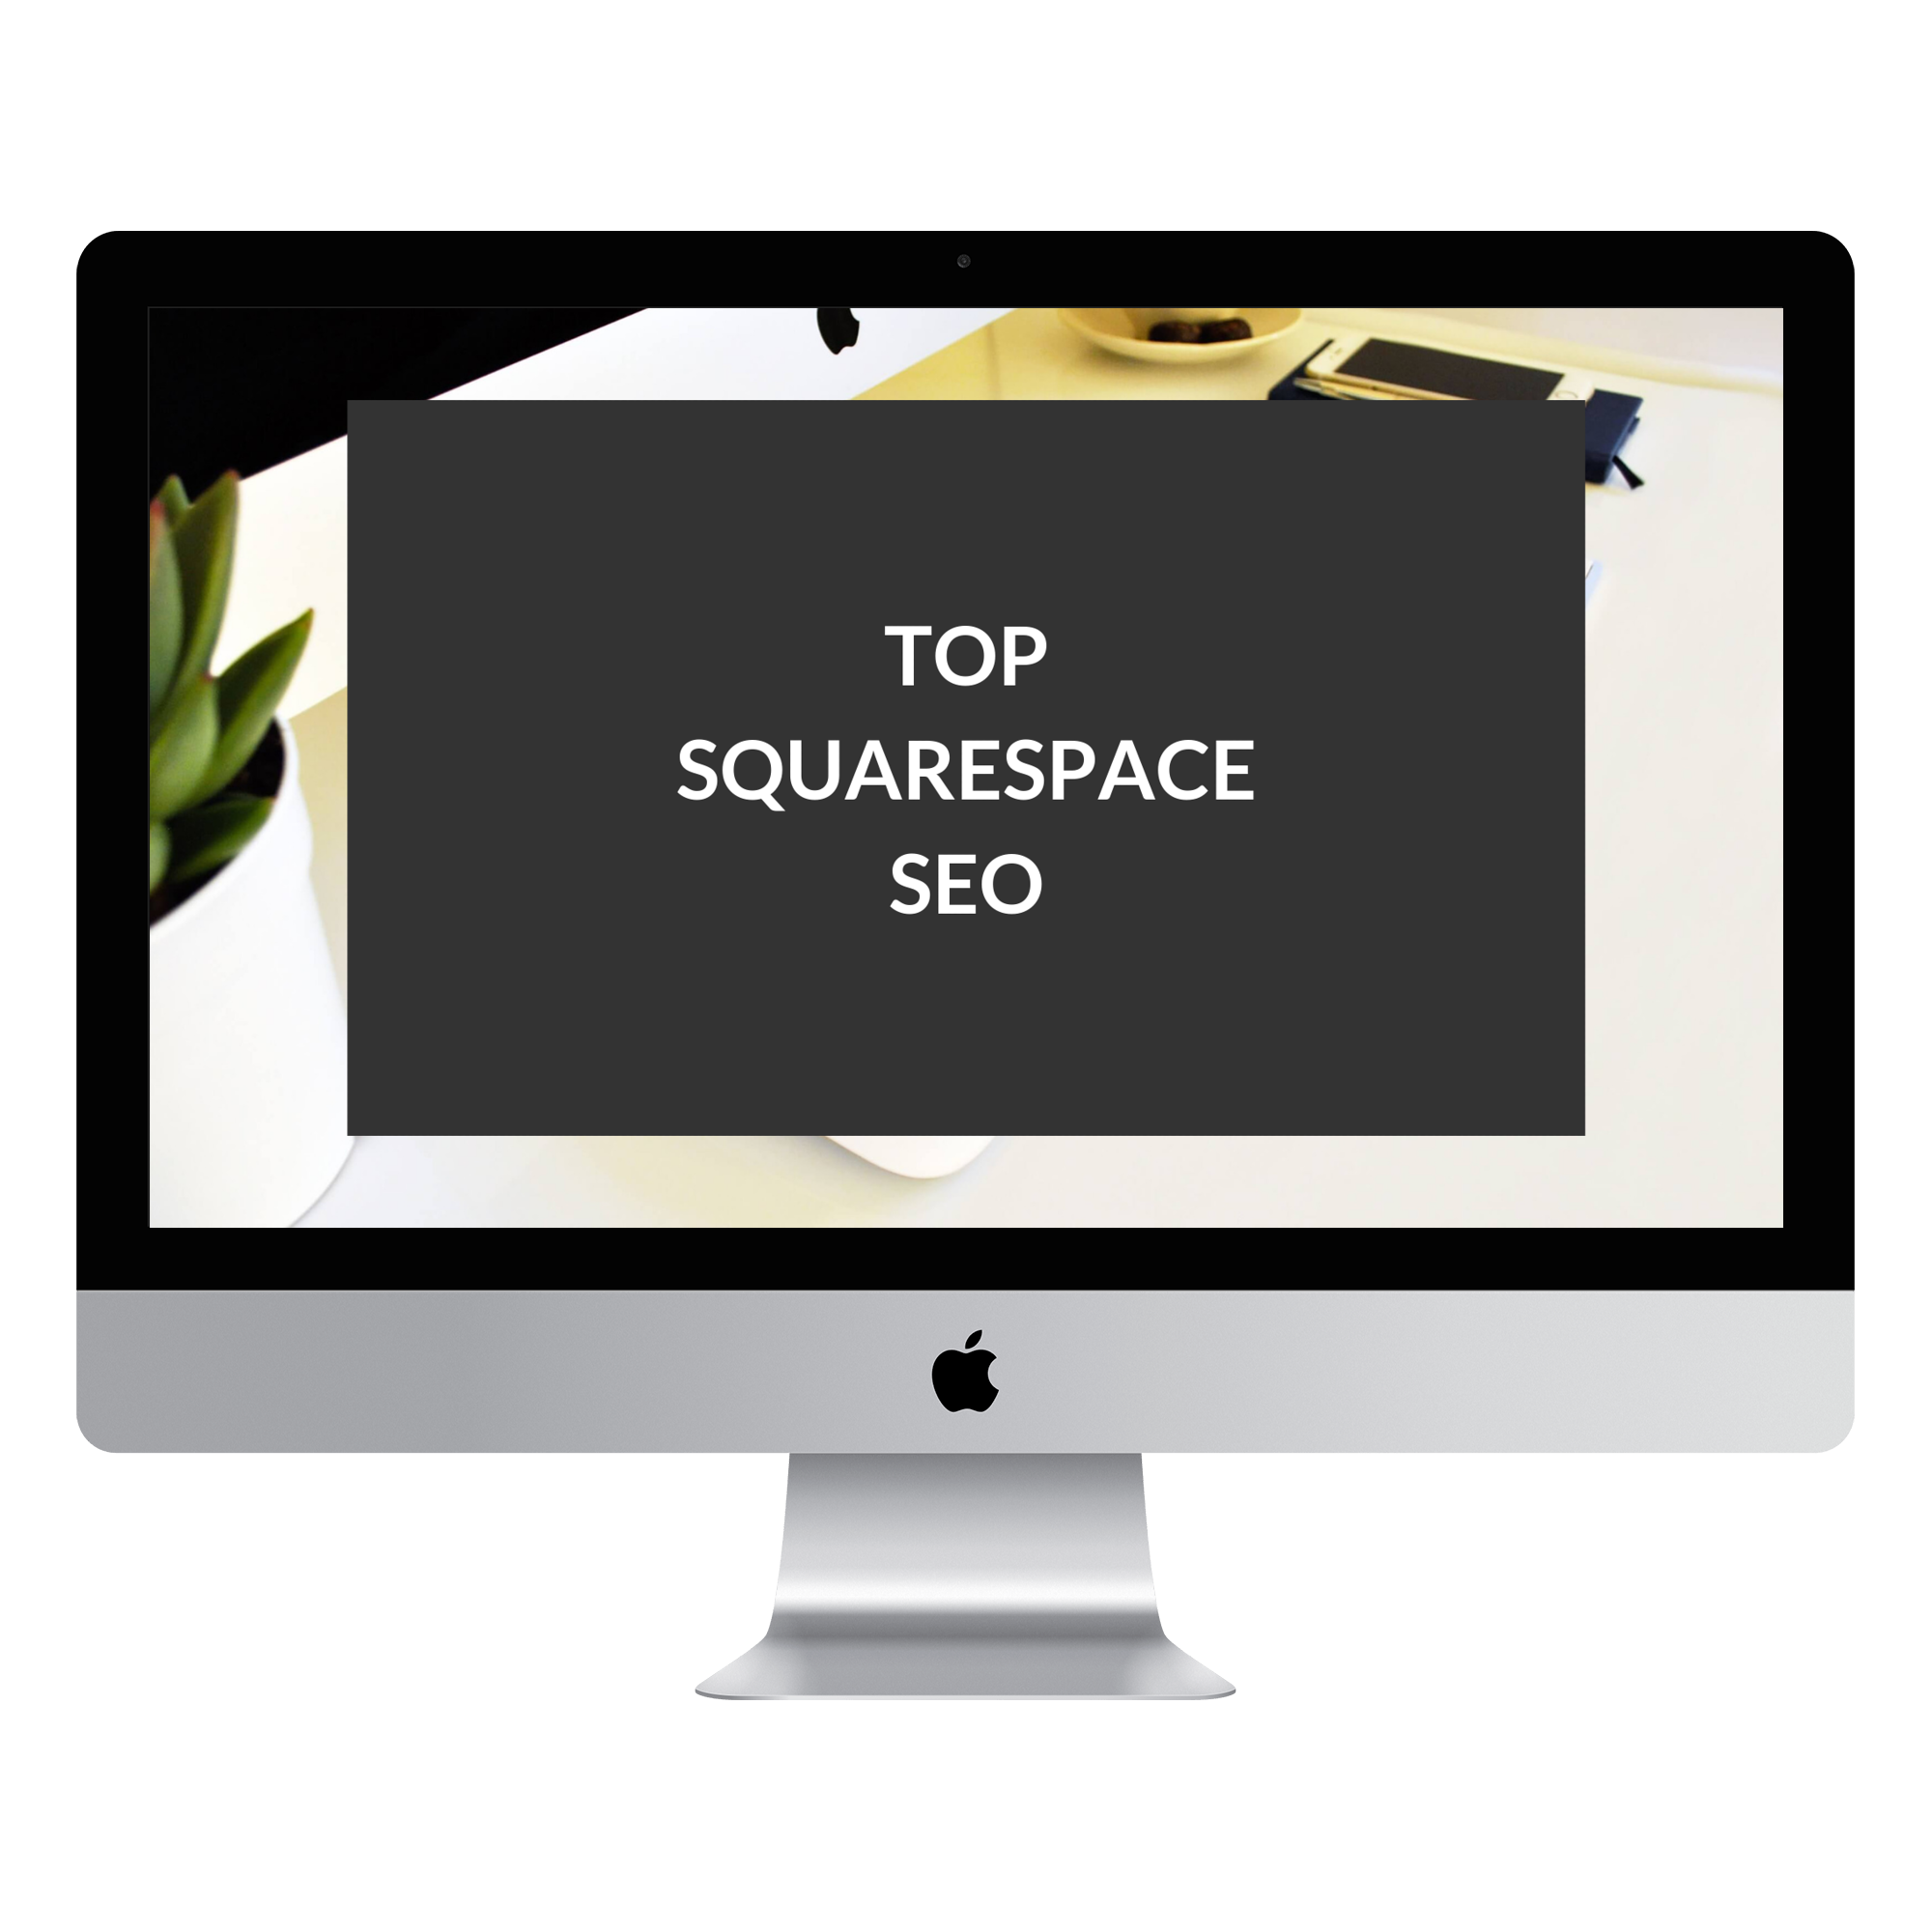 Top Squarespace SEO | Online Course